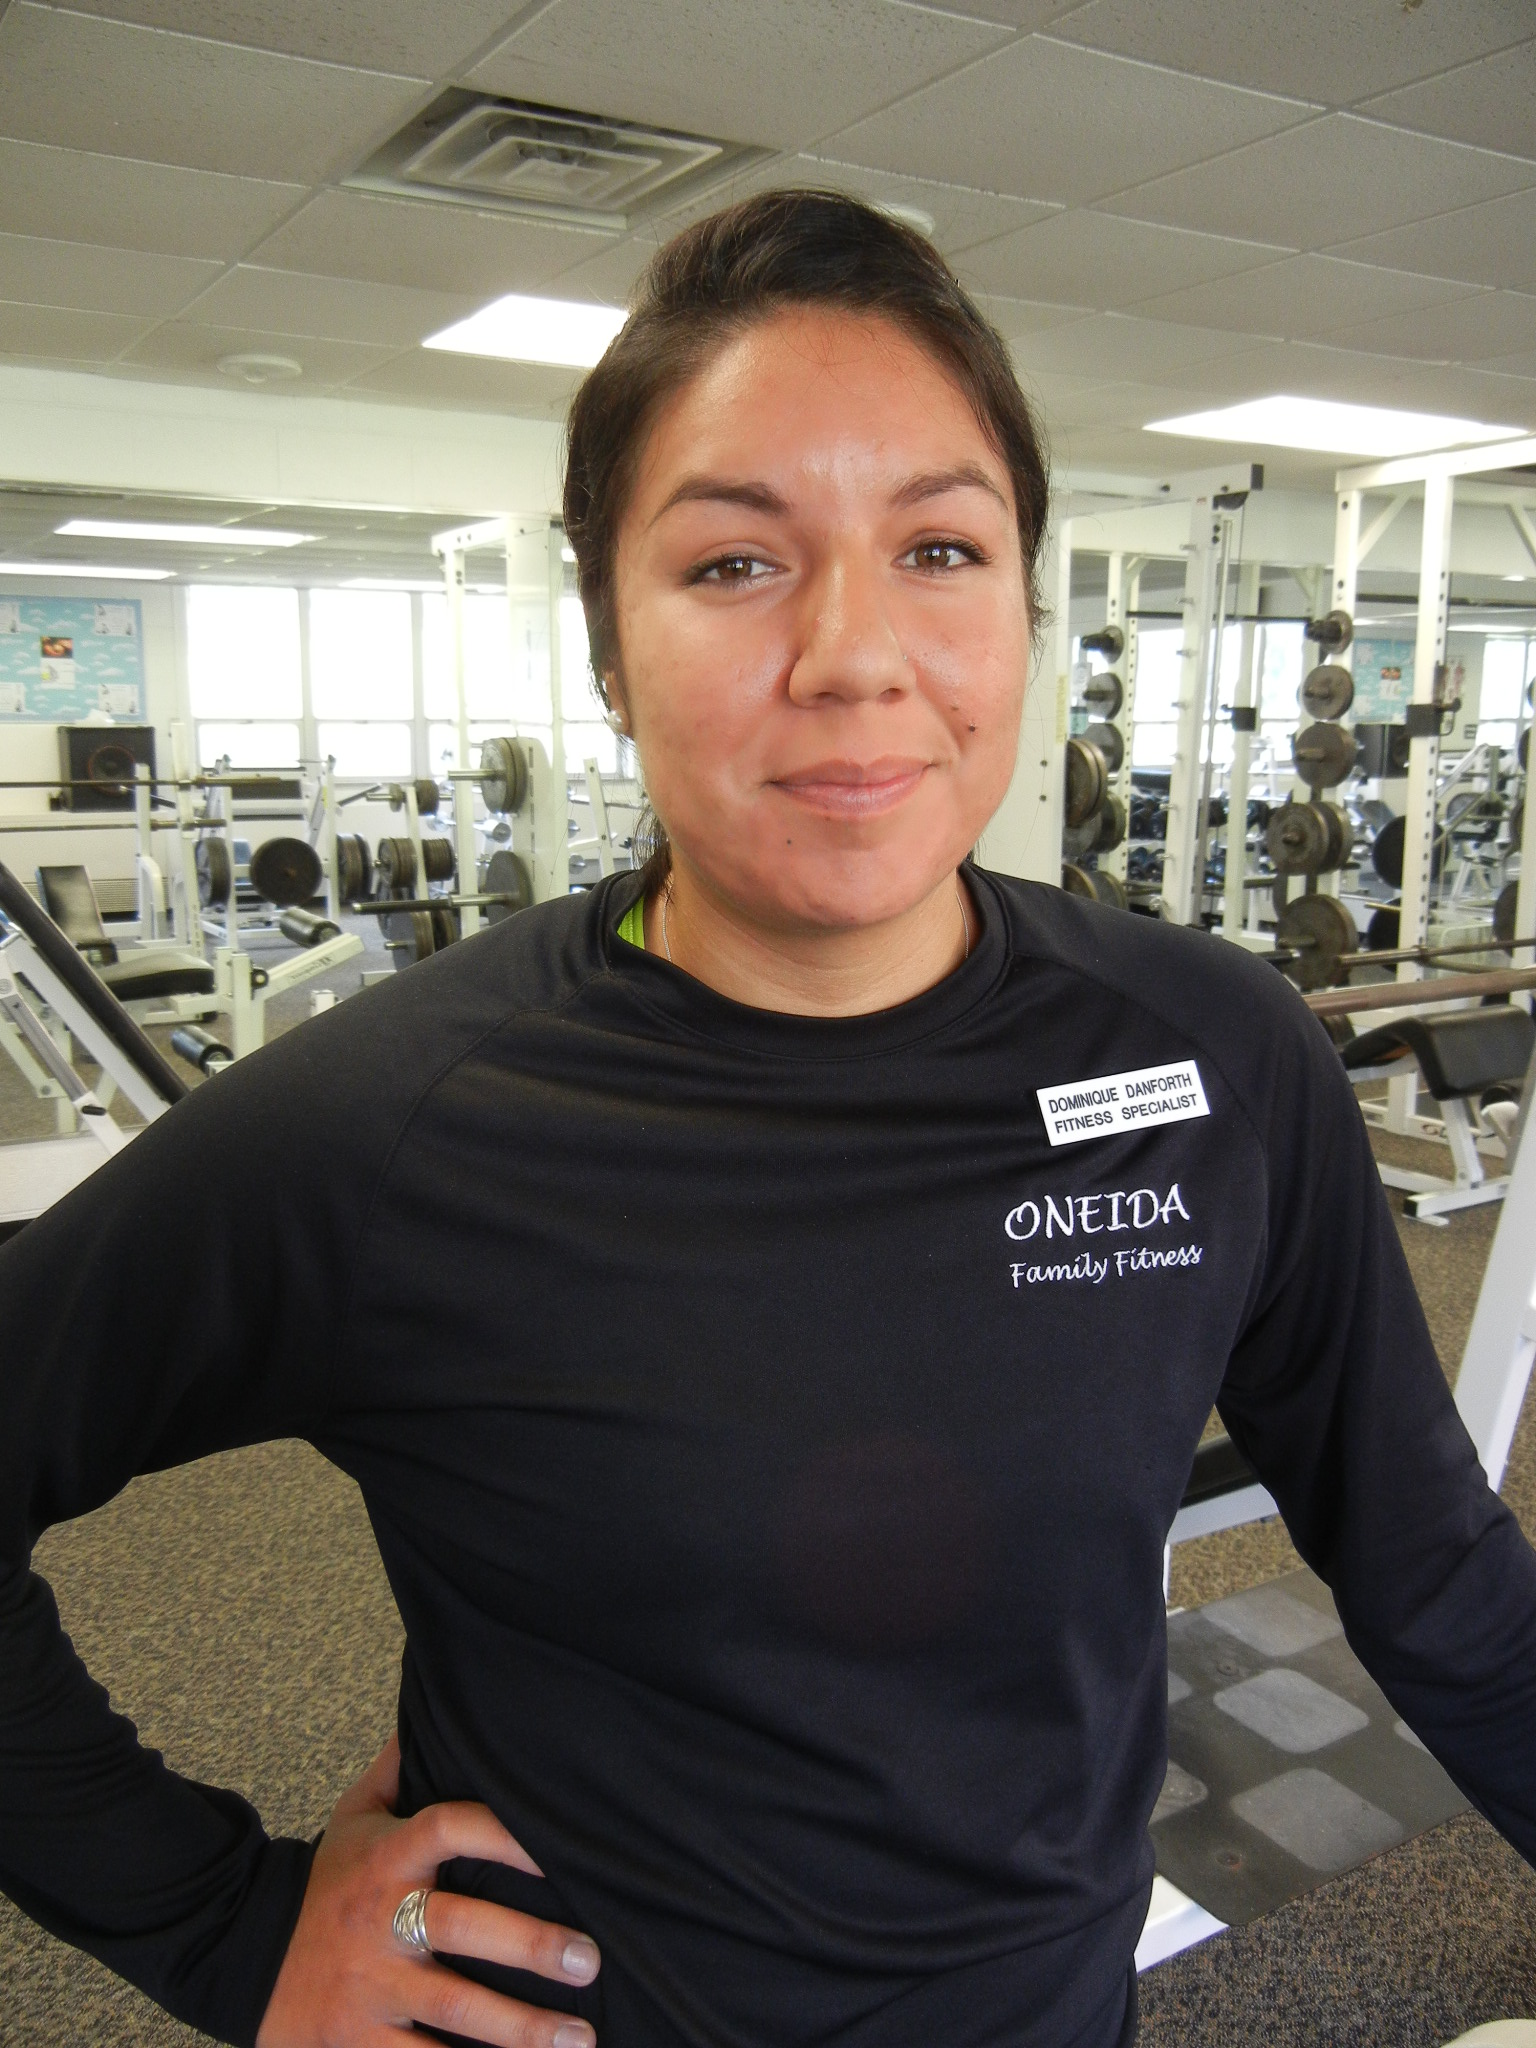 Oneida Nation  About Fitness  Recreation